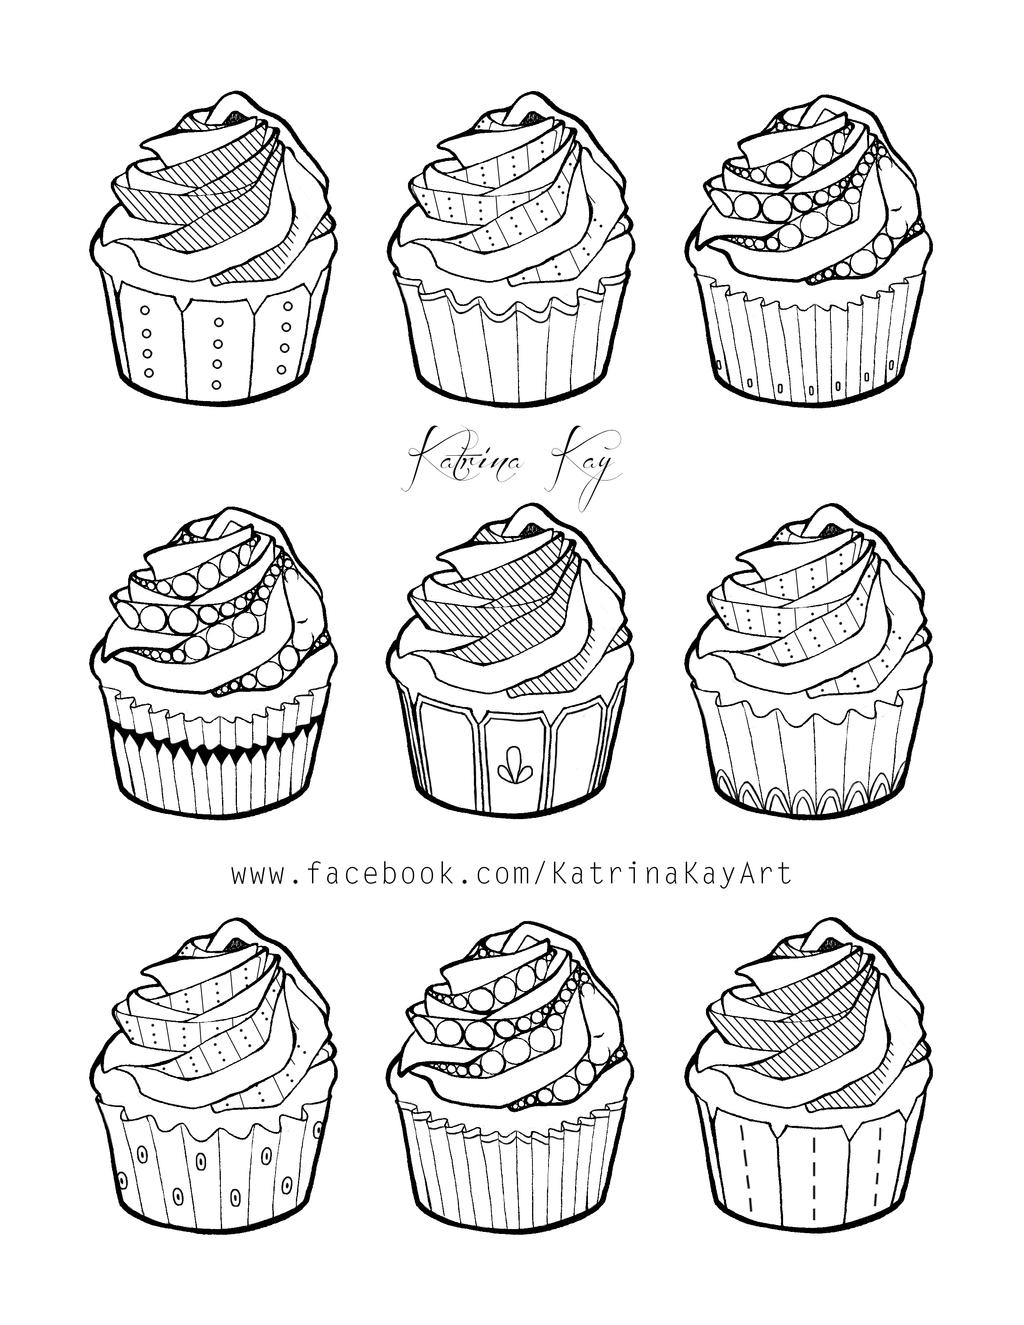 Cupcake Coloring Pages For Adults : Adult Coloring Book Page - Cupcakes by Katoons88 on DeviantArt